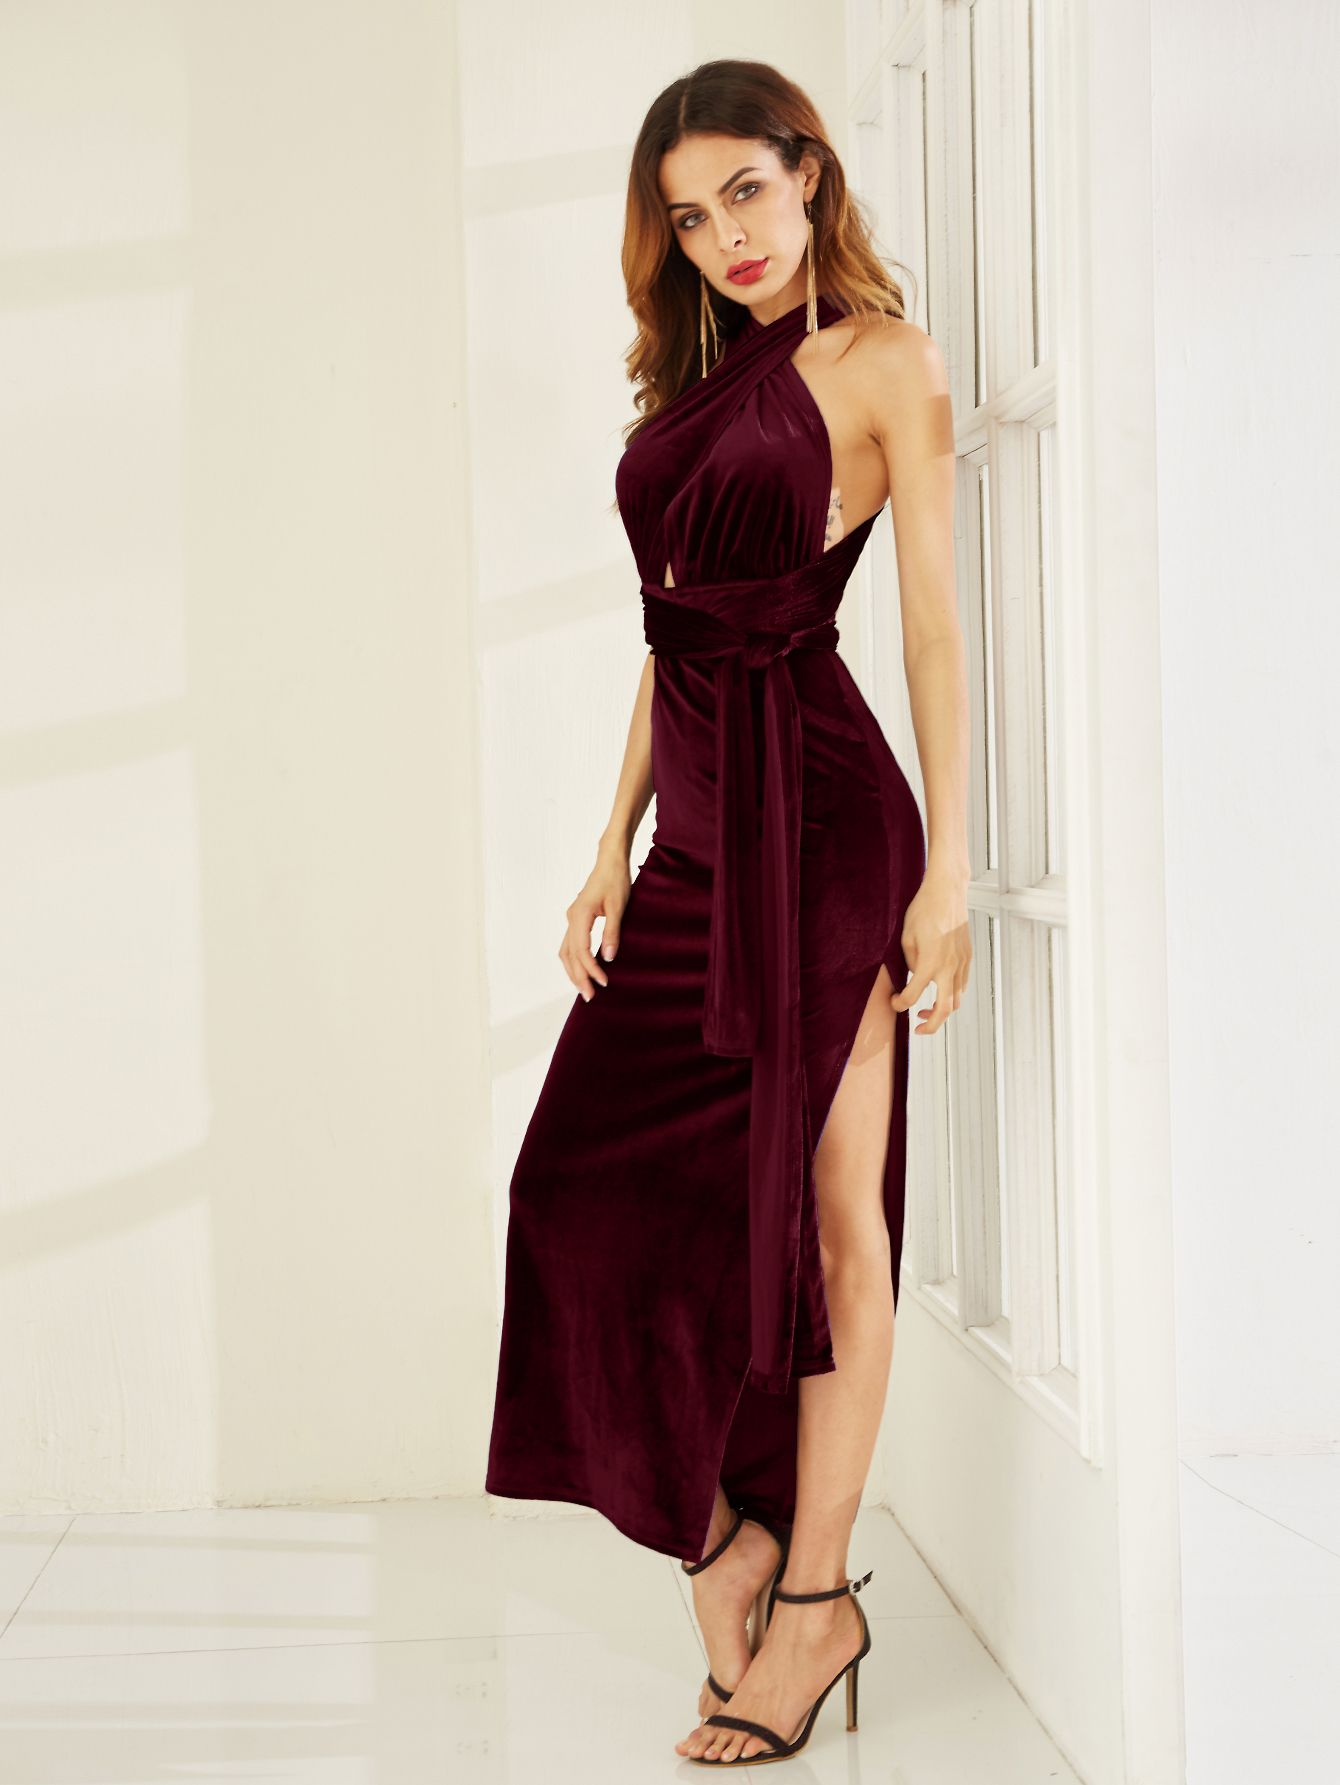 c41160ee0b1b Robe fente haut velours convertible -bordeaux rouge -French SheIn(Sheinside)